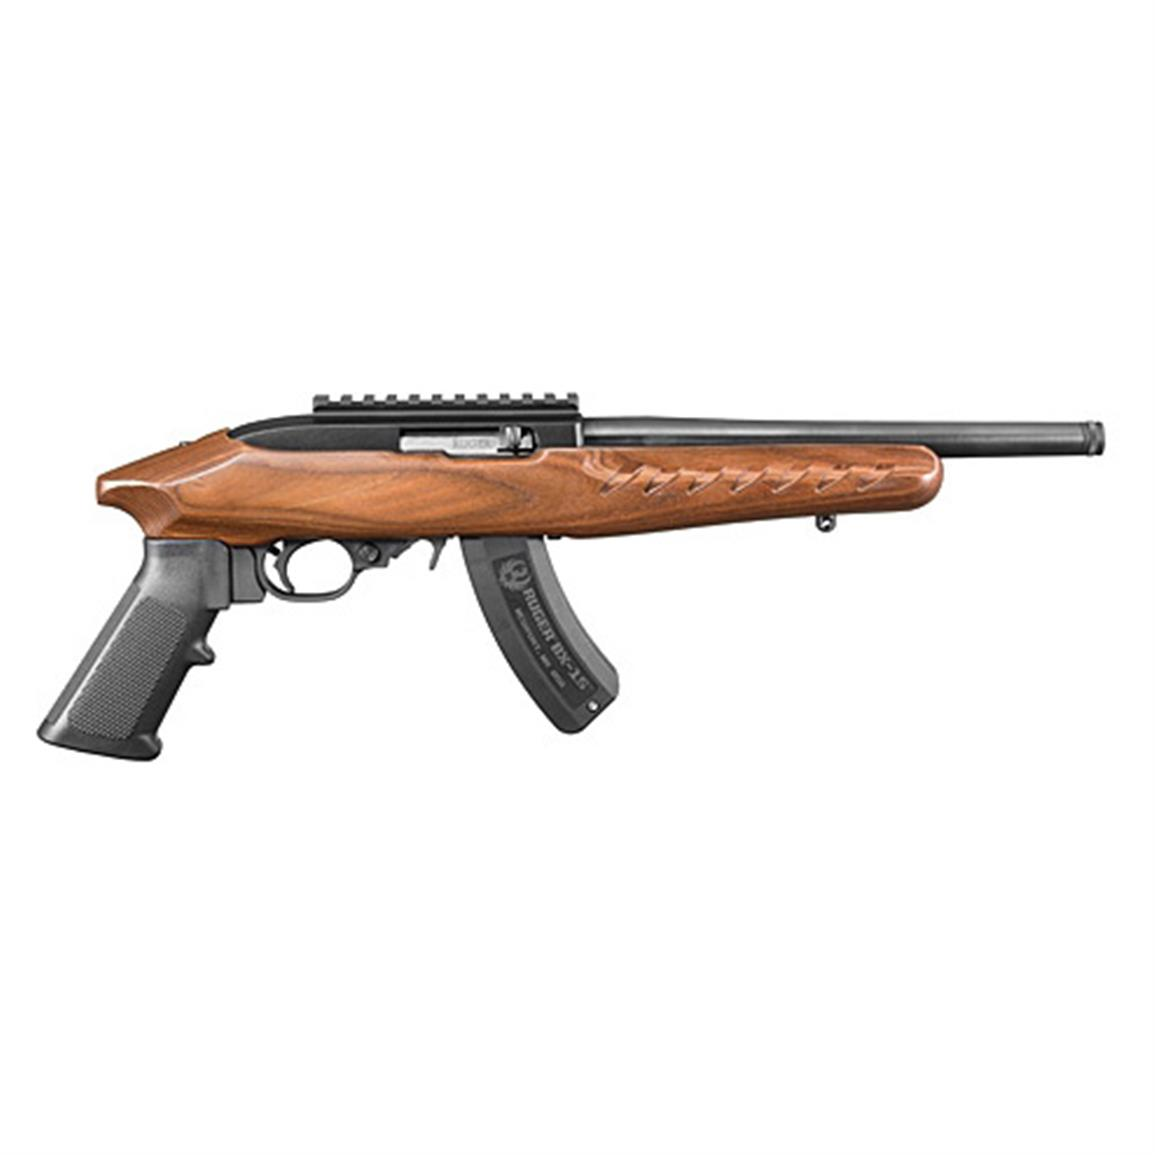 "Ruger 22 Charger, Semi-Automatic, .22LR, Rimfire, 10"" Barrel, 15 Rounds"